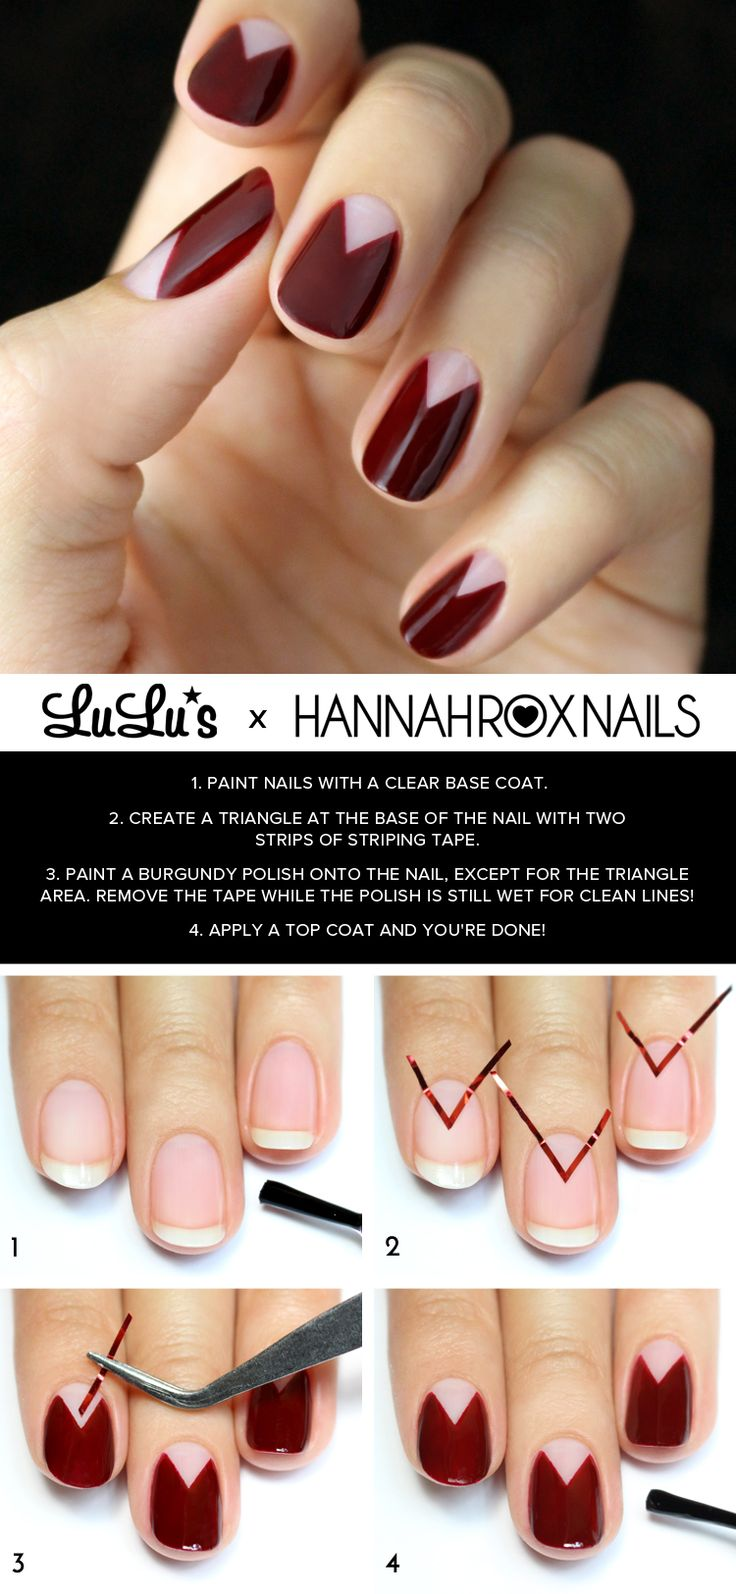 Our Burgundy Chevron Half Moon mani has taken us over the moon and back again! Follow our tutorial on the blog to recreate the look!